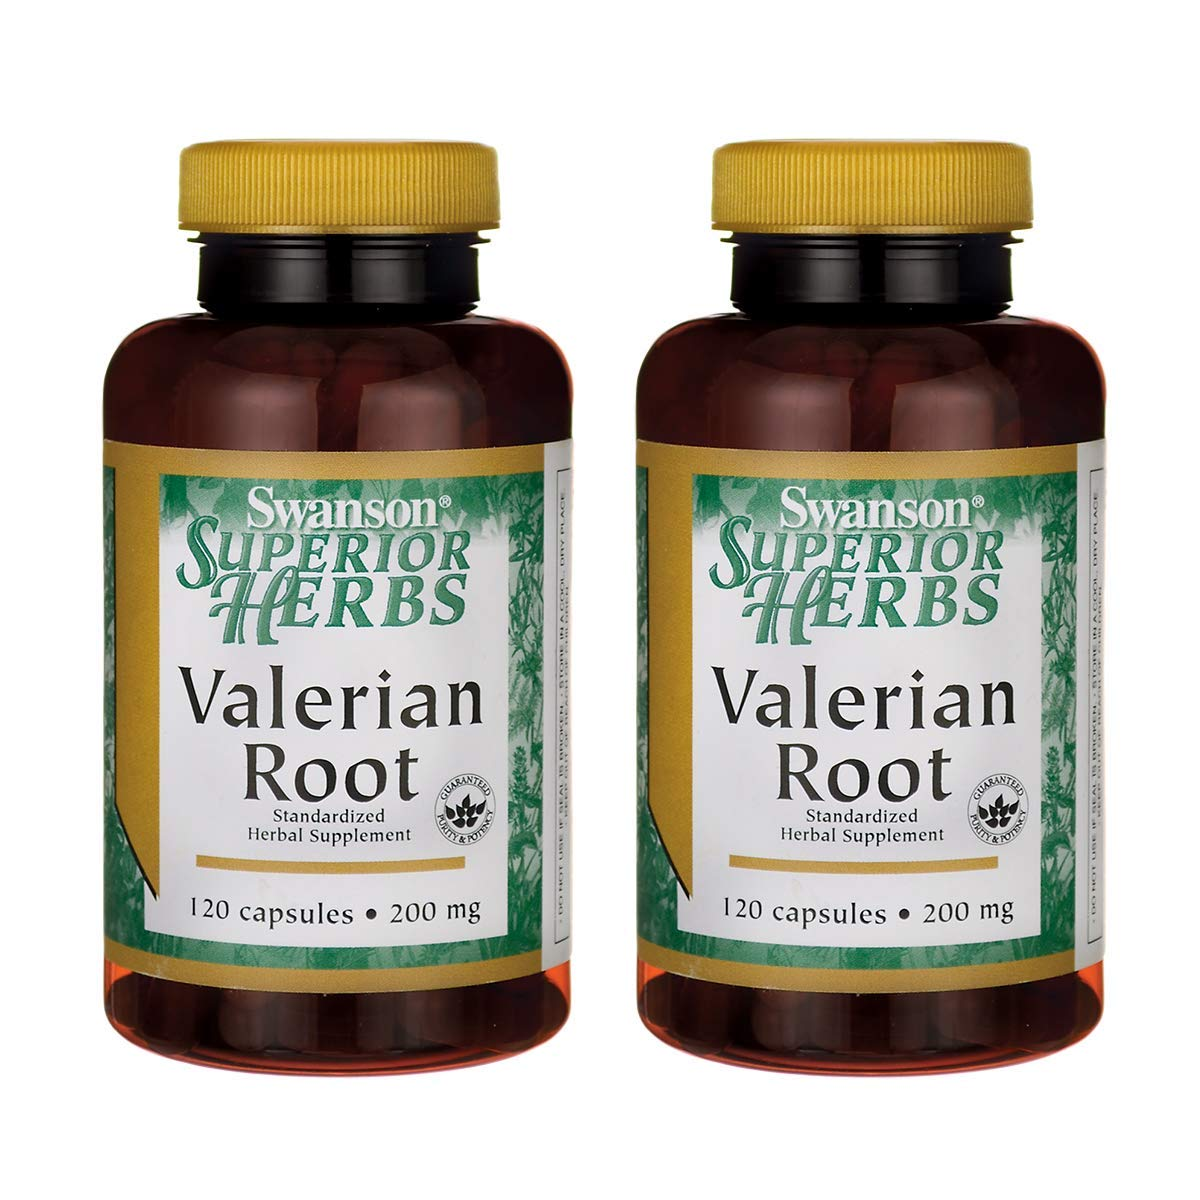 Swanson Valerian Root (Standardized) 200 Milligrams 120 Capsules (2 Pack)